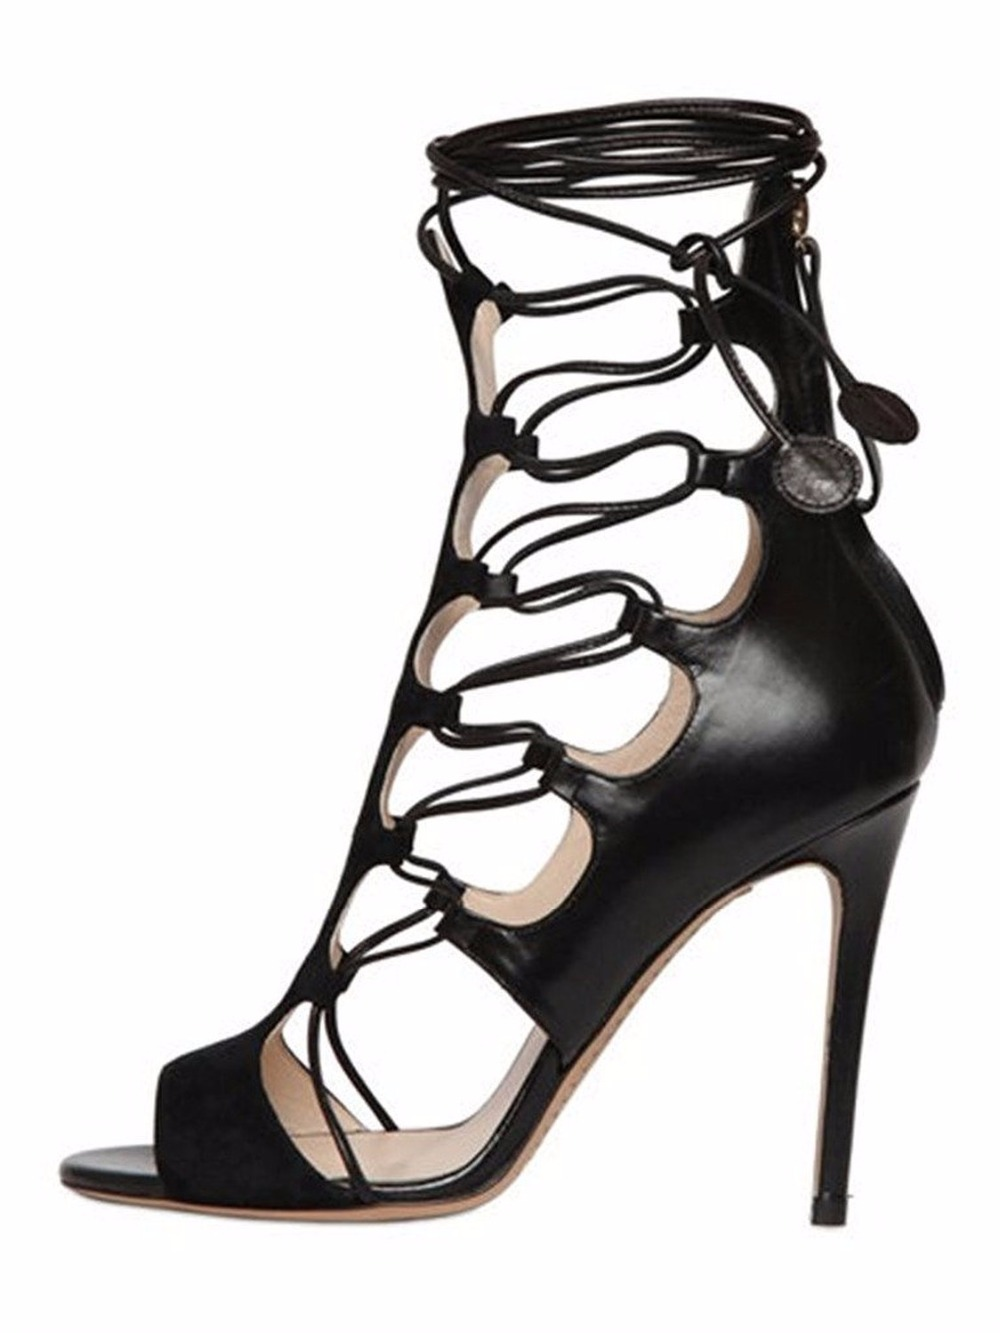 Inisastyle Stiletto High heel solid Women's Shoe lace up peep toe cross-tied sandalia backstrap cutouts rome pumps big size 4-15